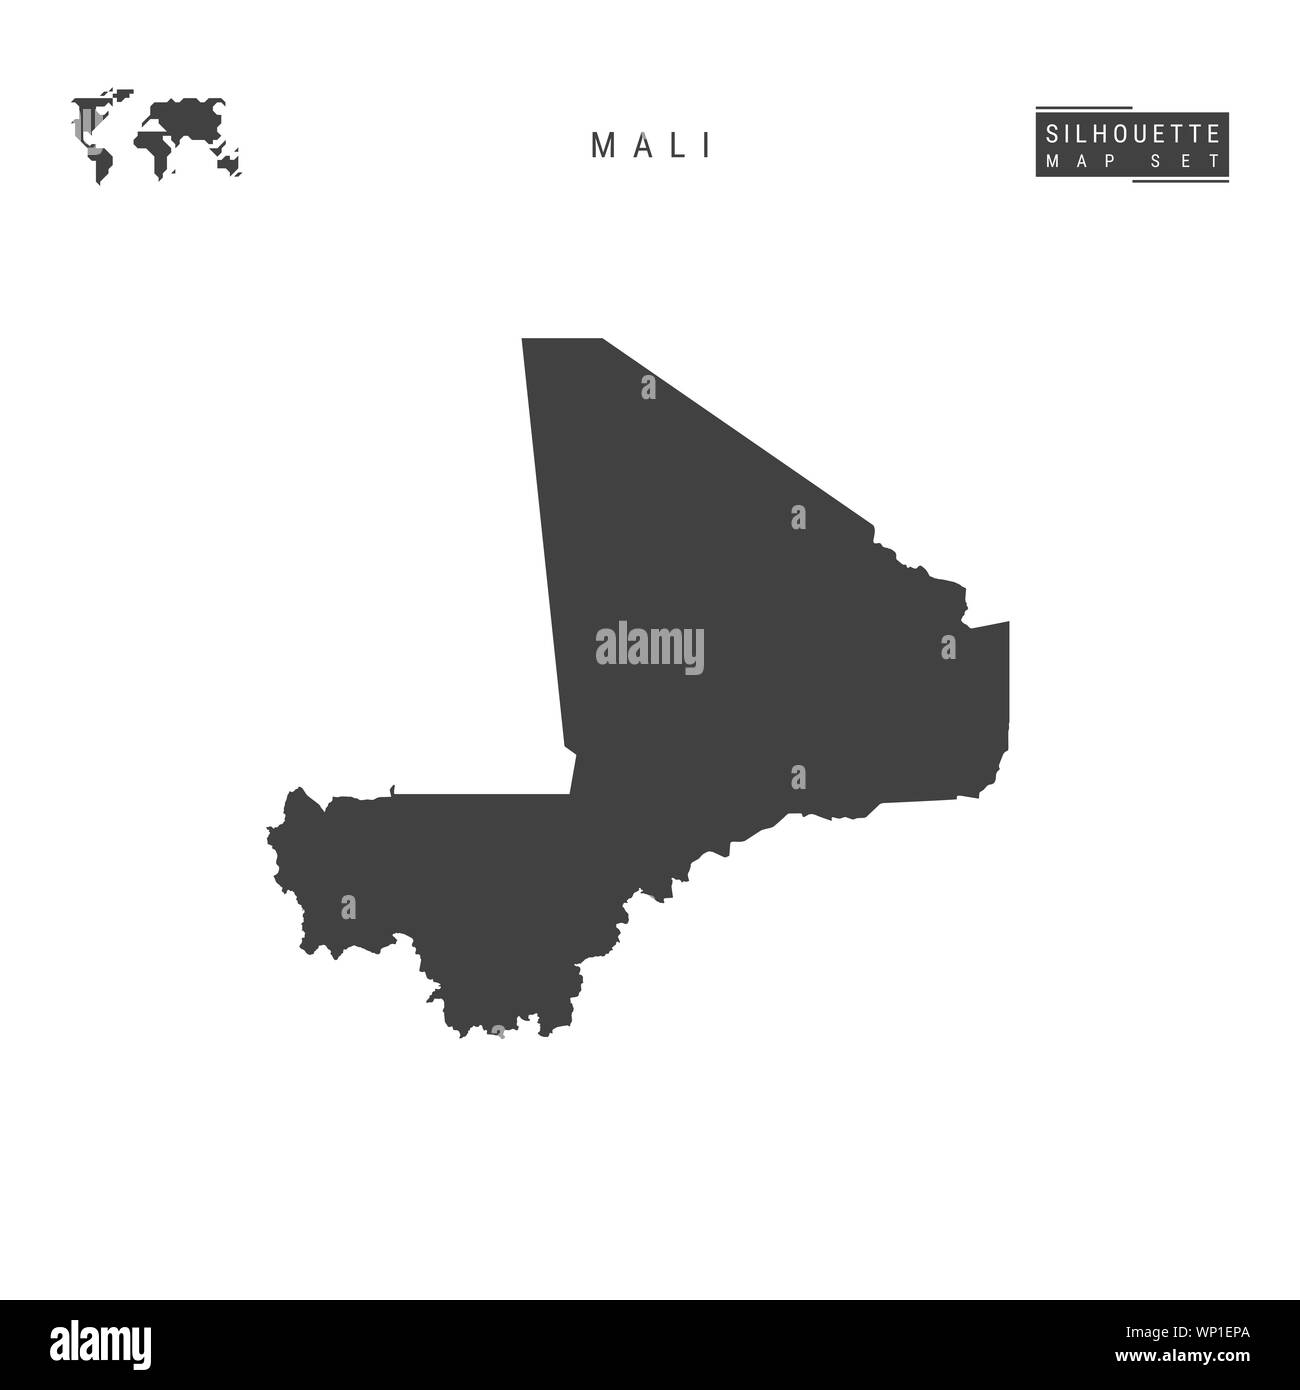 Mali Blank Map Isolated on White Background. High-Detailed Black Silhouette Map of Mali. Stock Photo